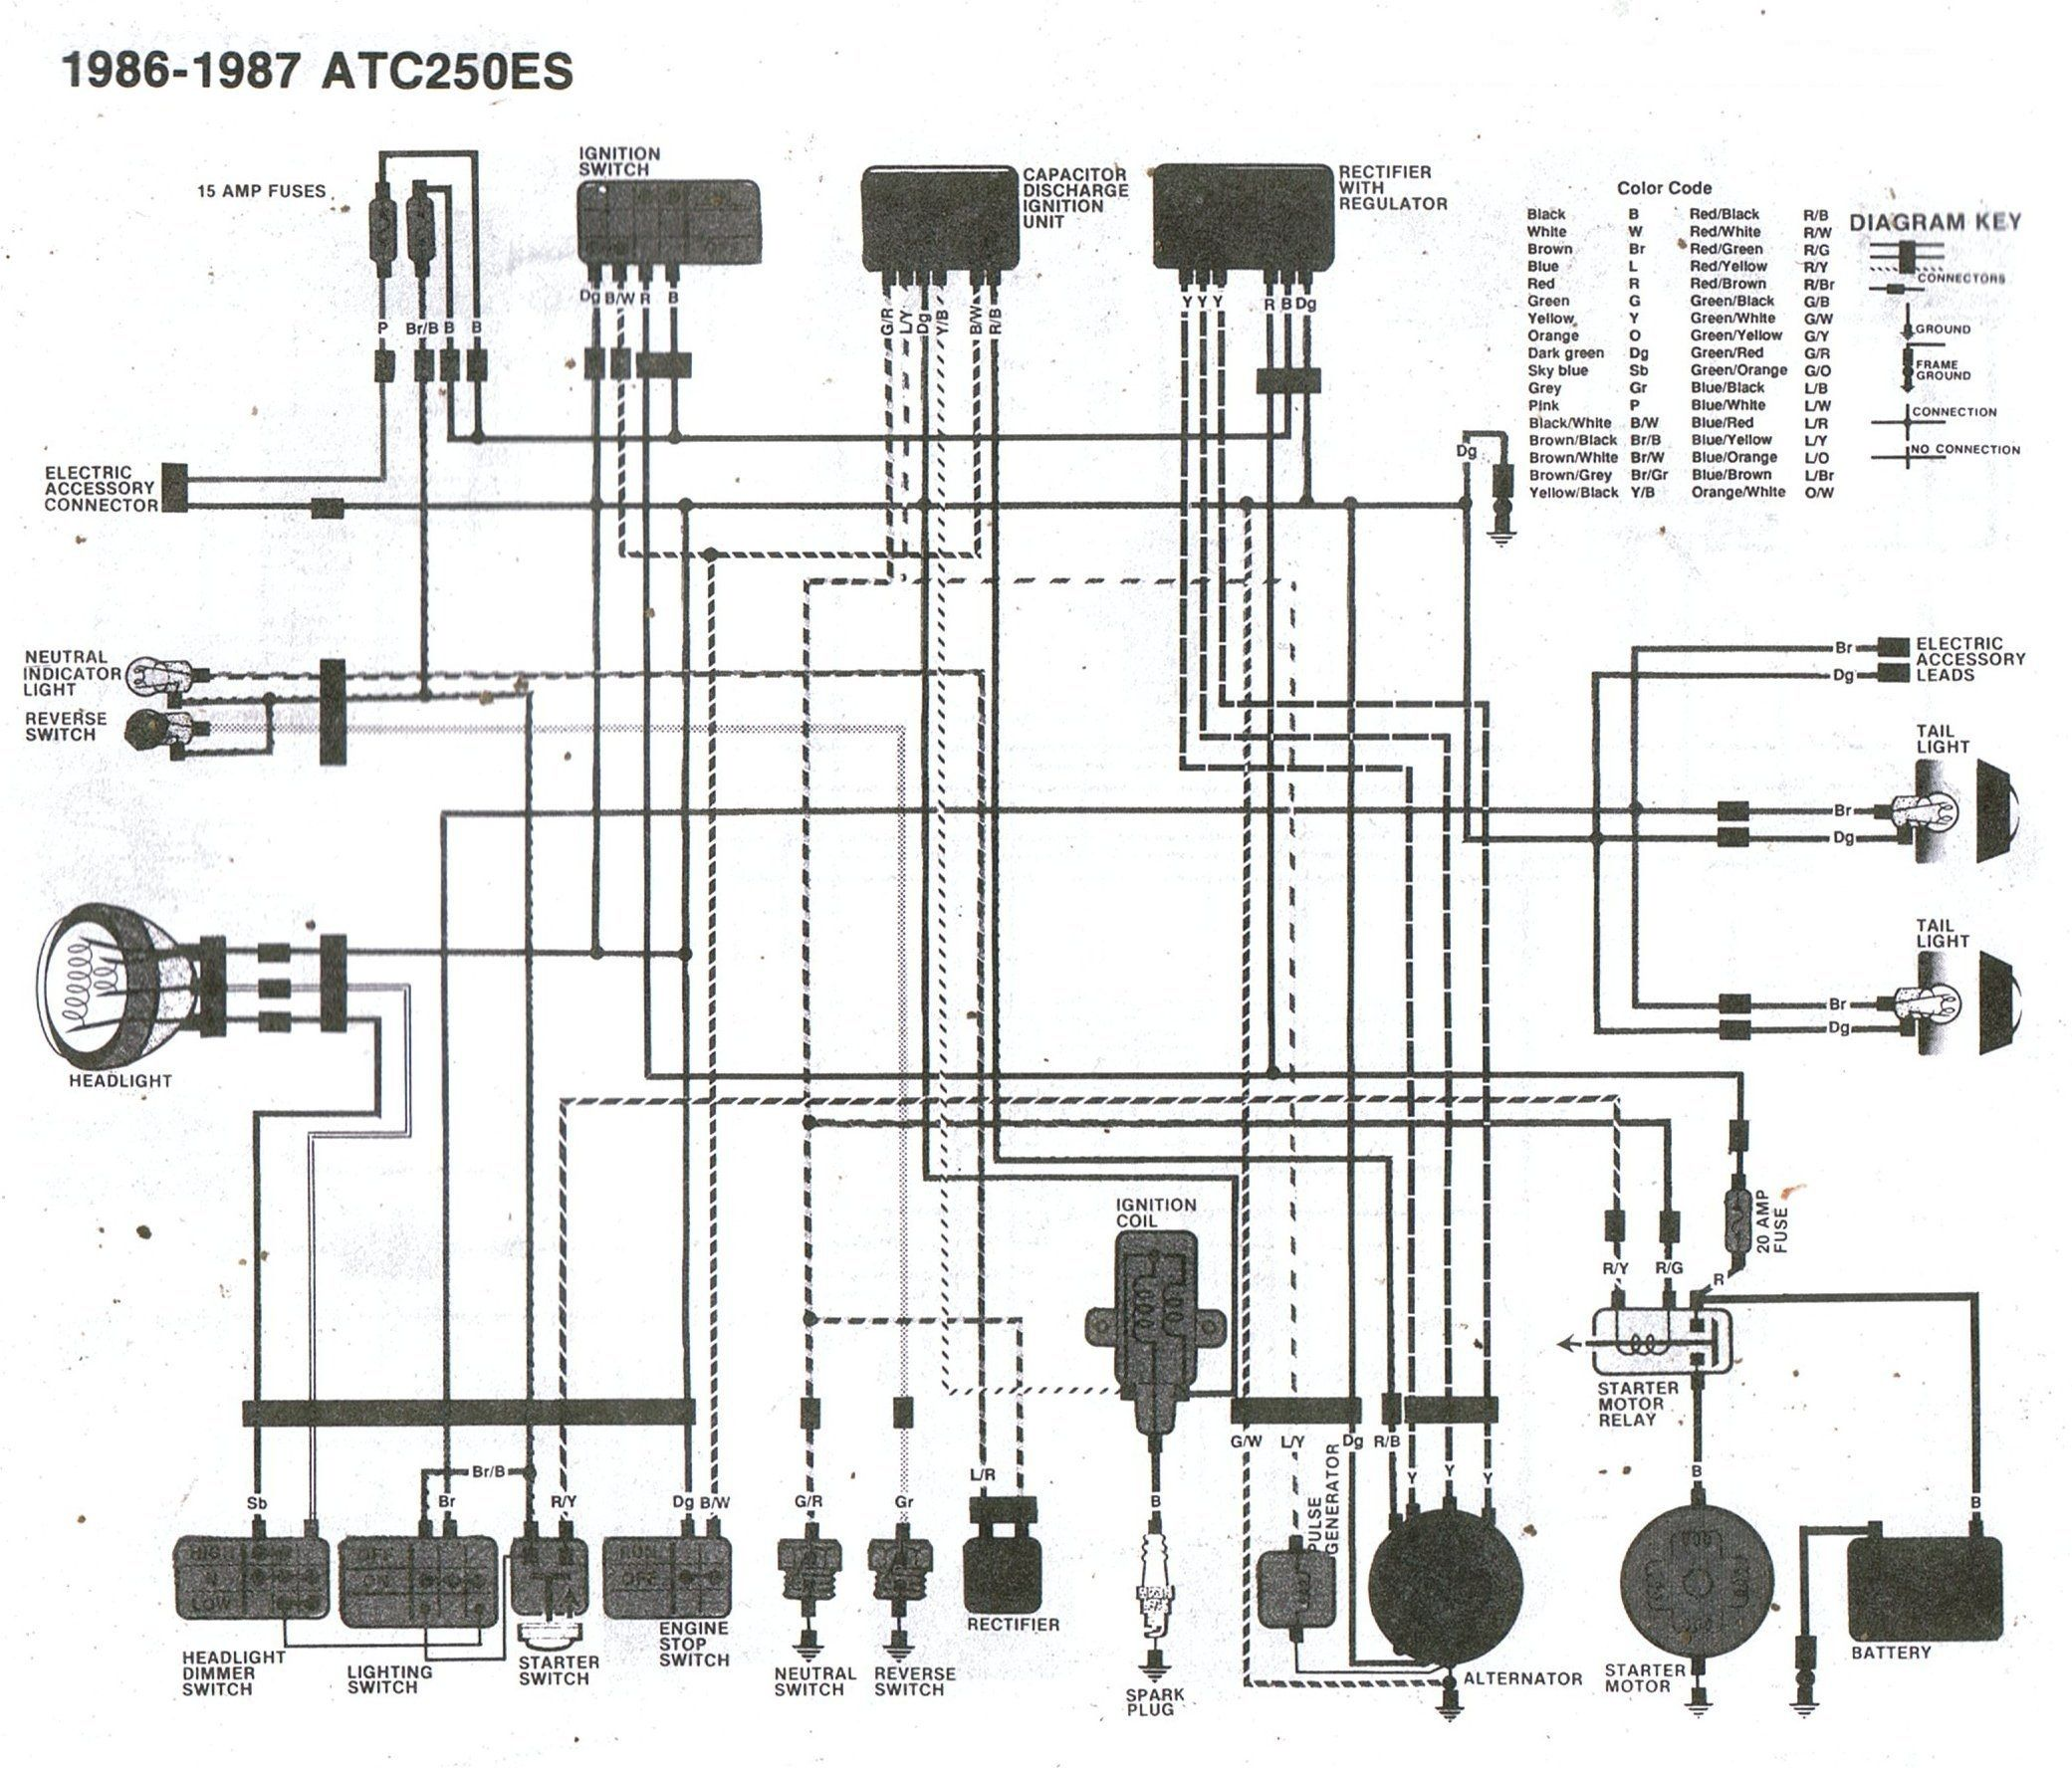 wiring diagram 1986 honda big red - wiring diagram loot-warehouse-a -  loot-warehouse-a.pasticceriagele.it  pasticceriagele.it